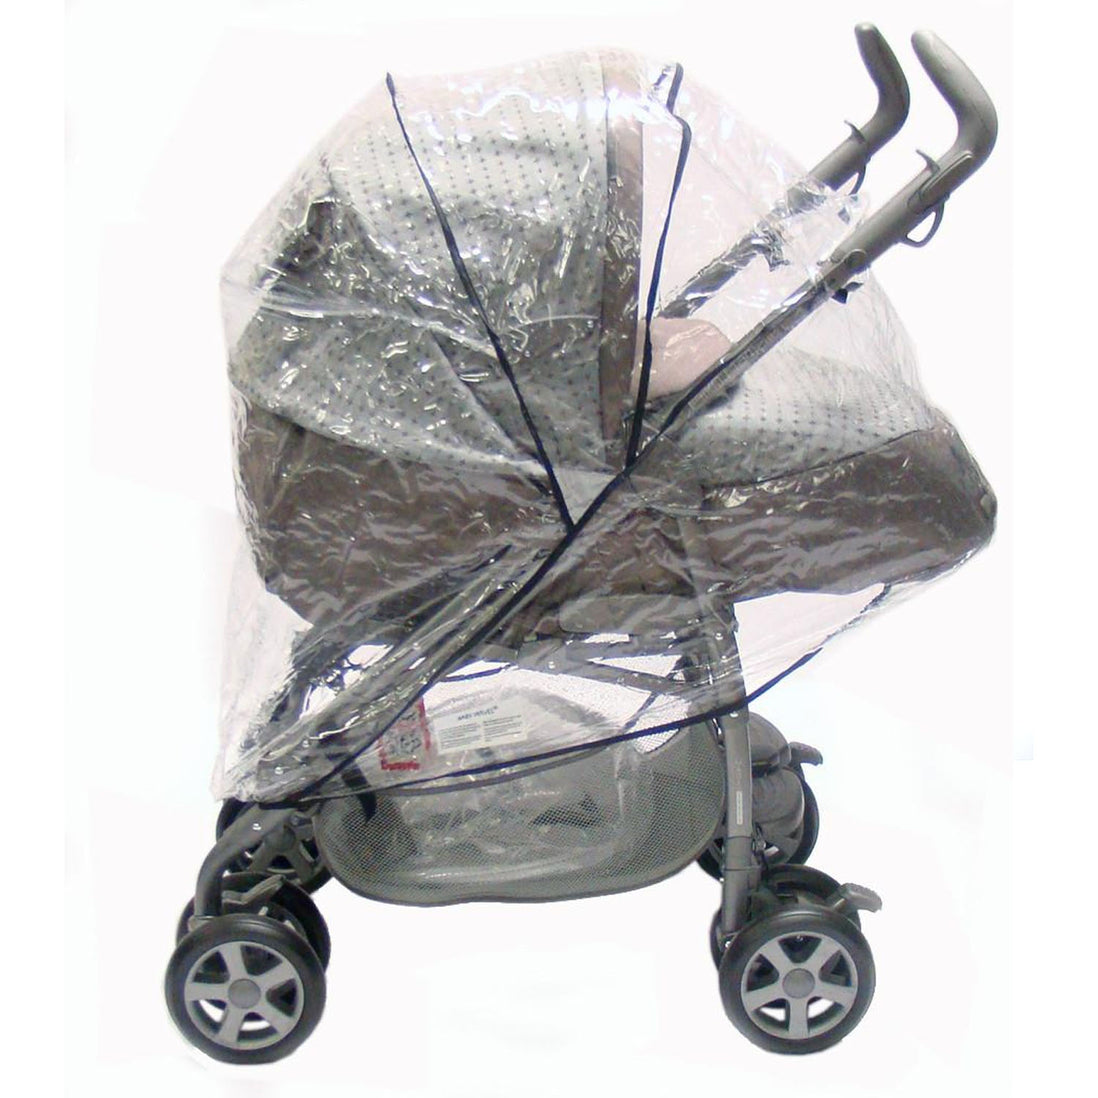 Rain Cover To Fit The Mamas And Papas Pliko Travel System